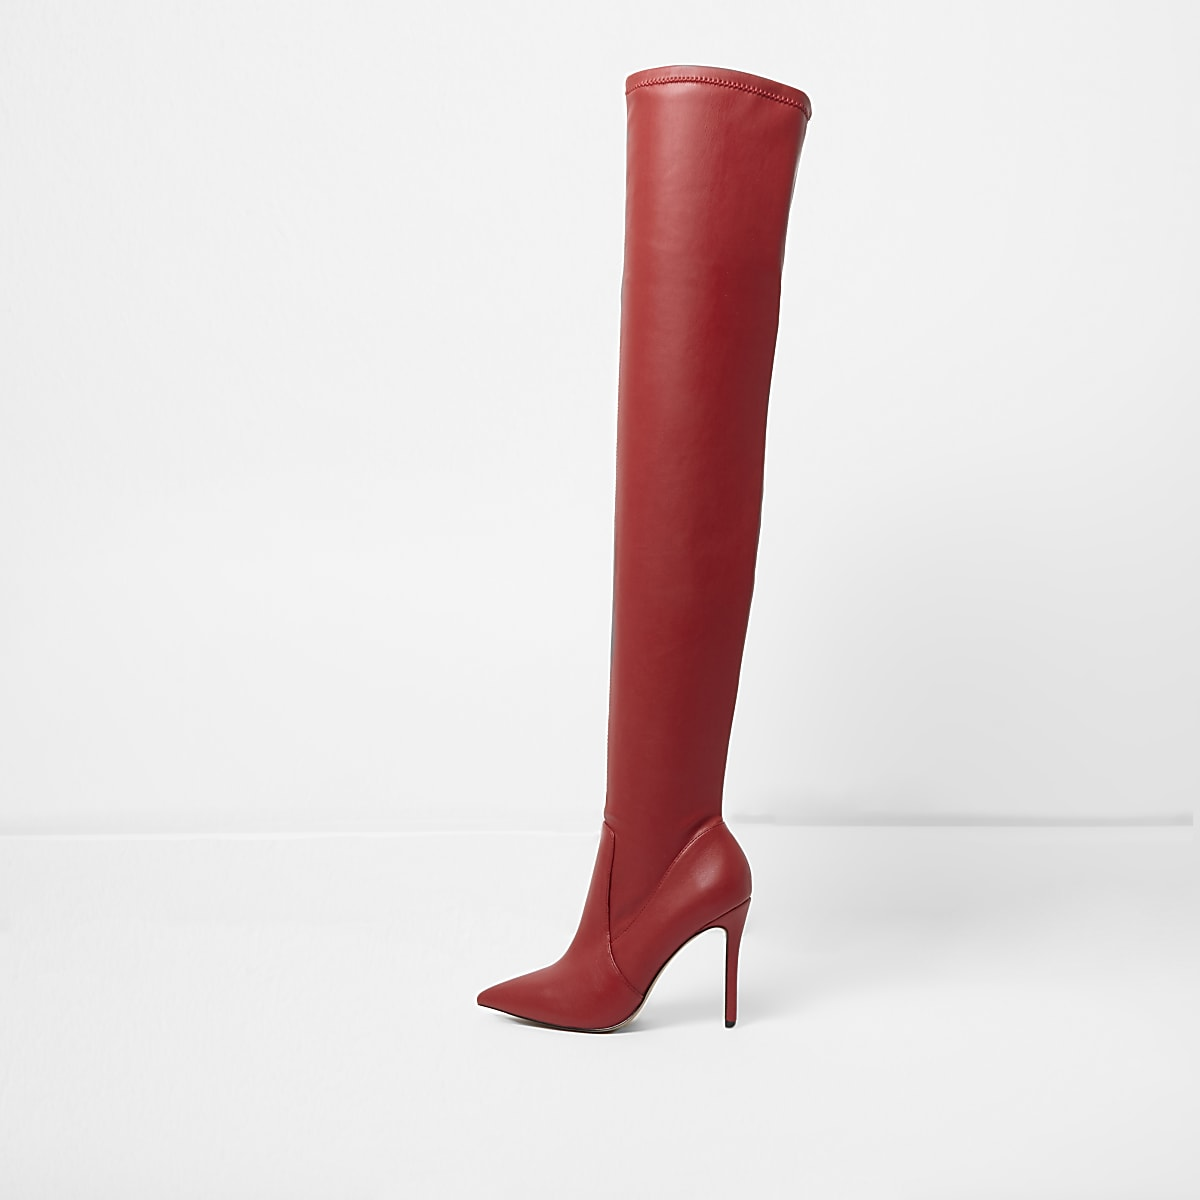 d59d735d381 Red over the knee heeled boots - Singles Day - women